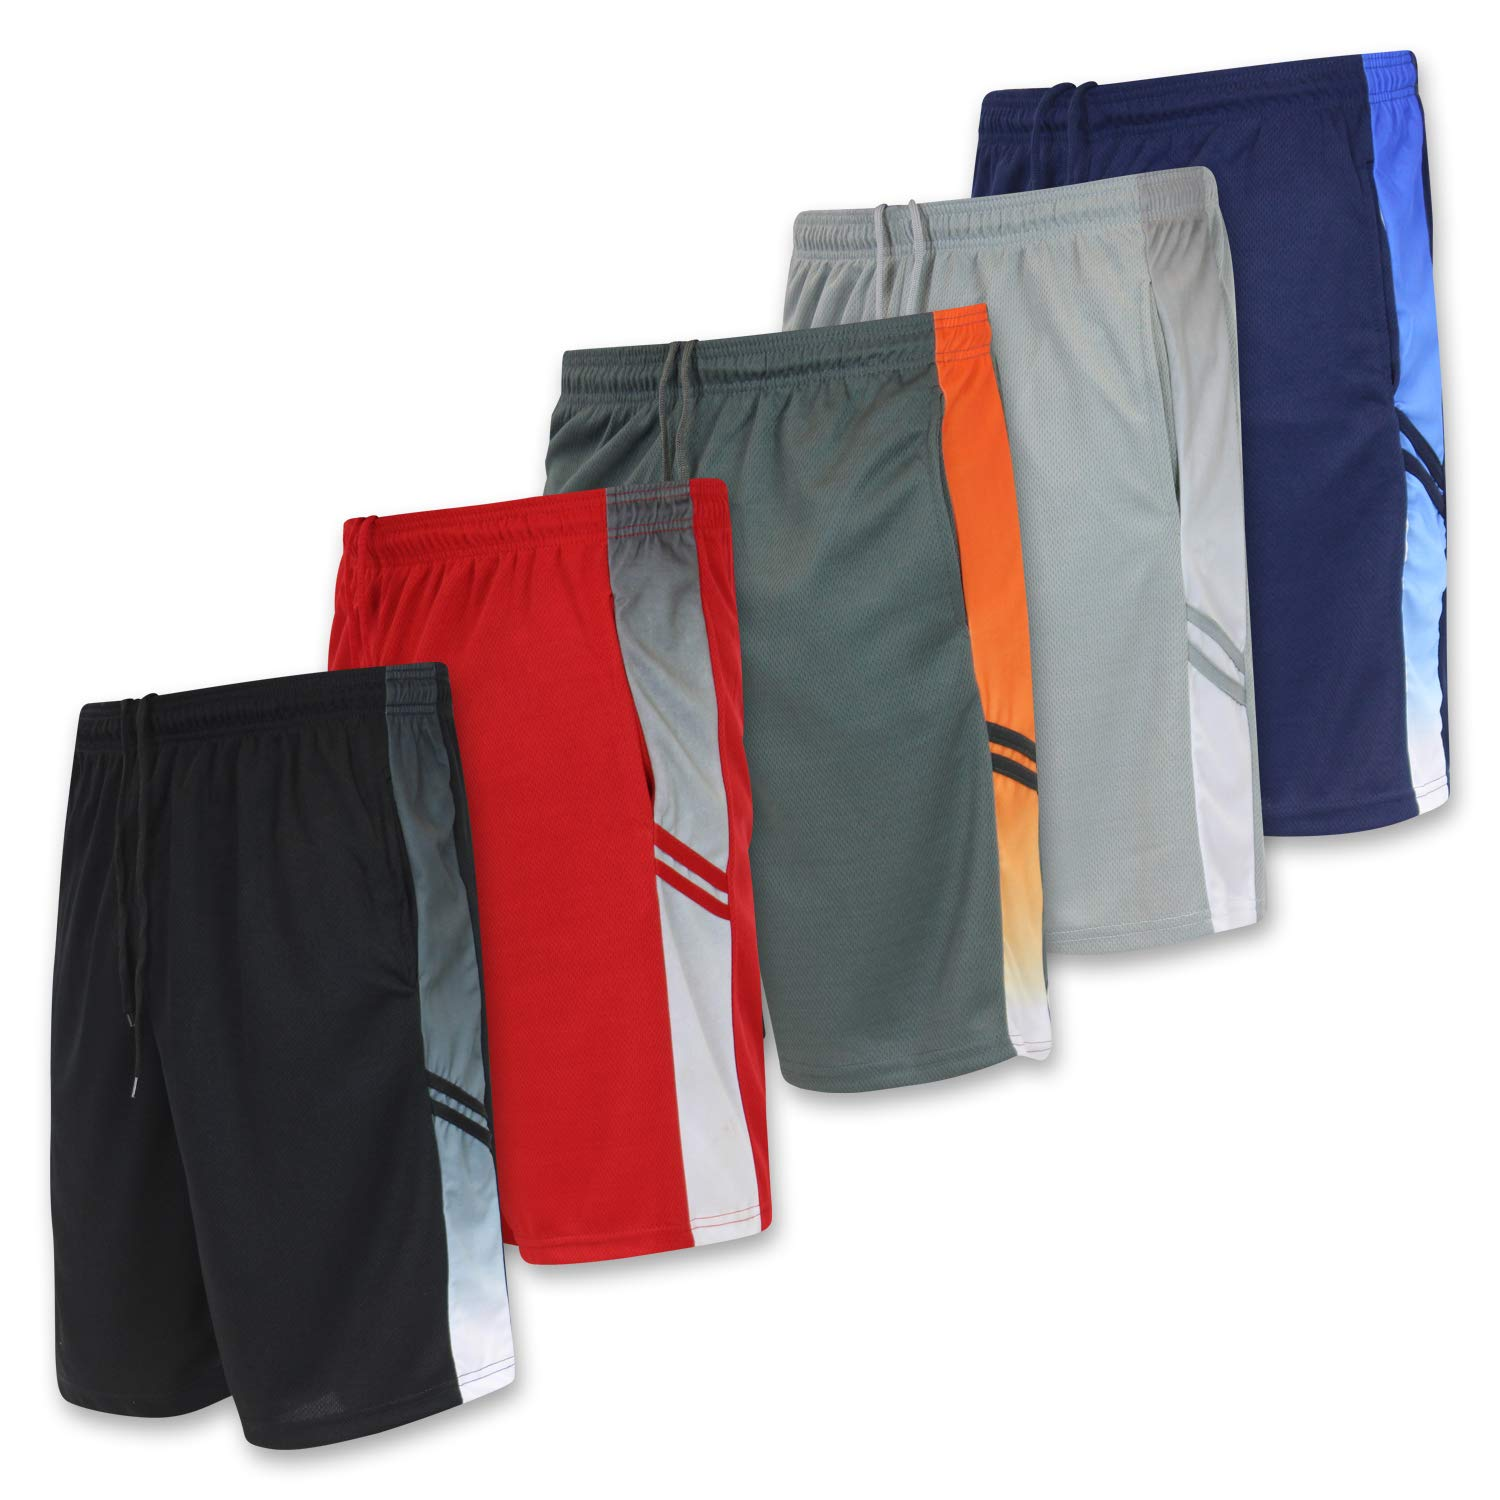 Men's Active Athletic Basketball Essentials Performance Gym Workout Shorts with Pockets - Set 1-5 Pack, M